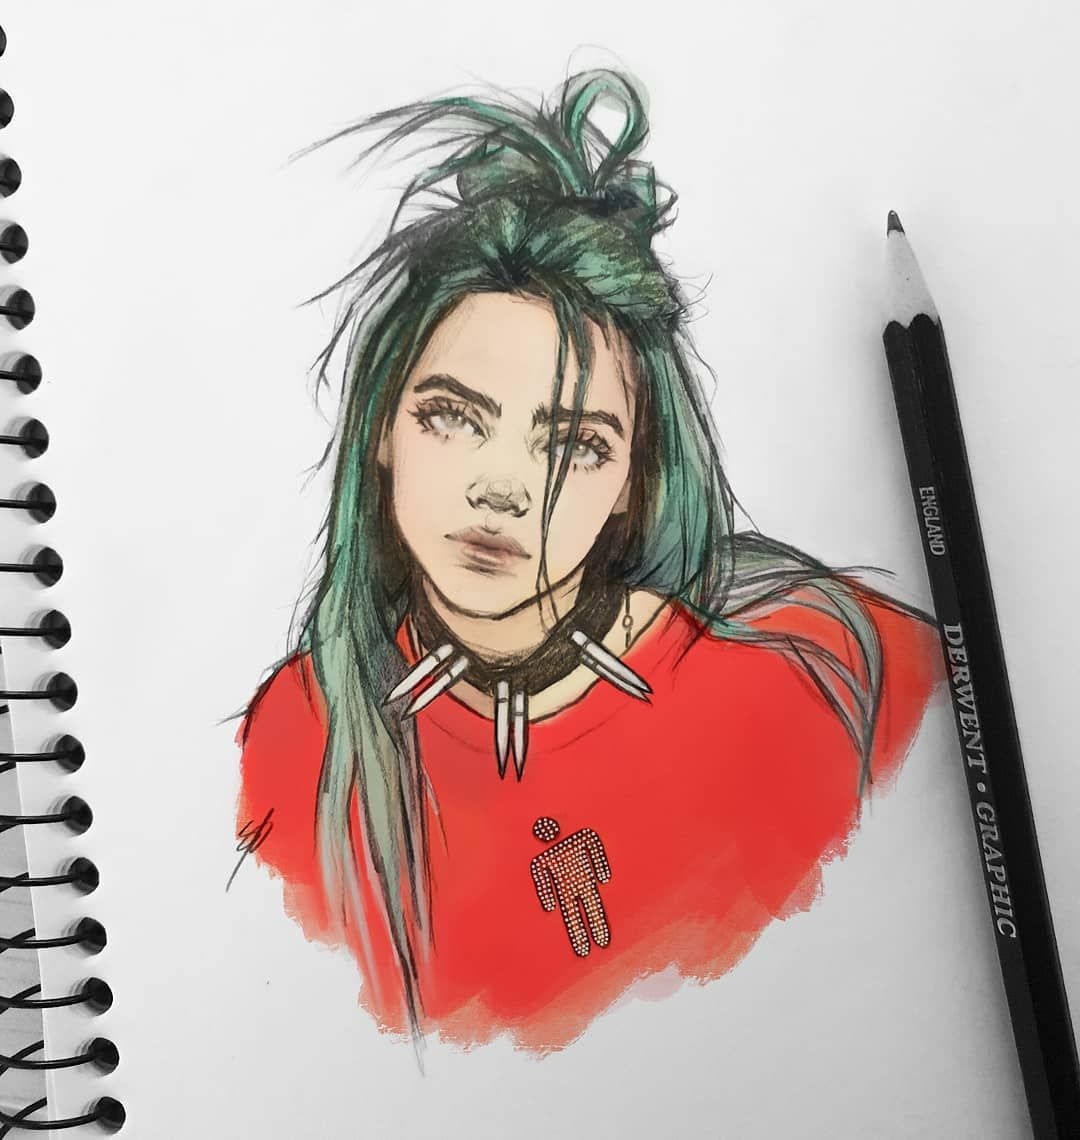 Billie Colour Version Billieeilish Billieeilishfanart Fanart Art Sketches Art Sketchbook Sketches